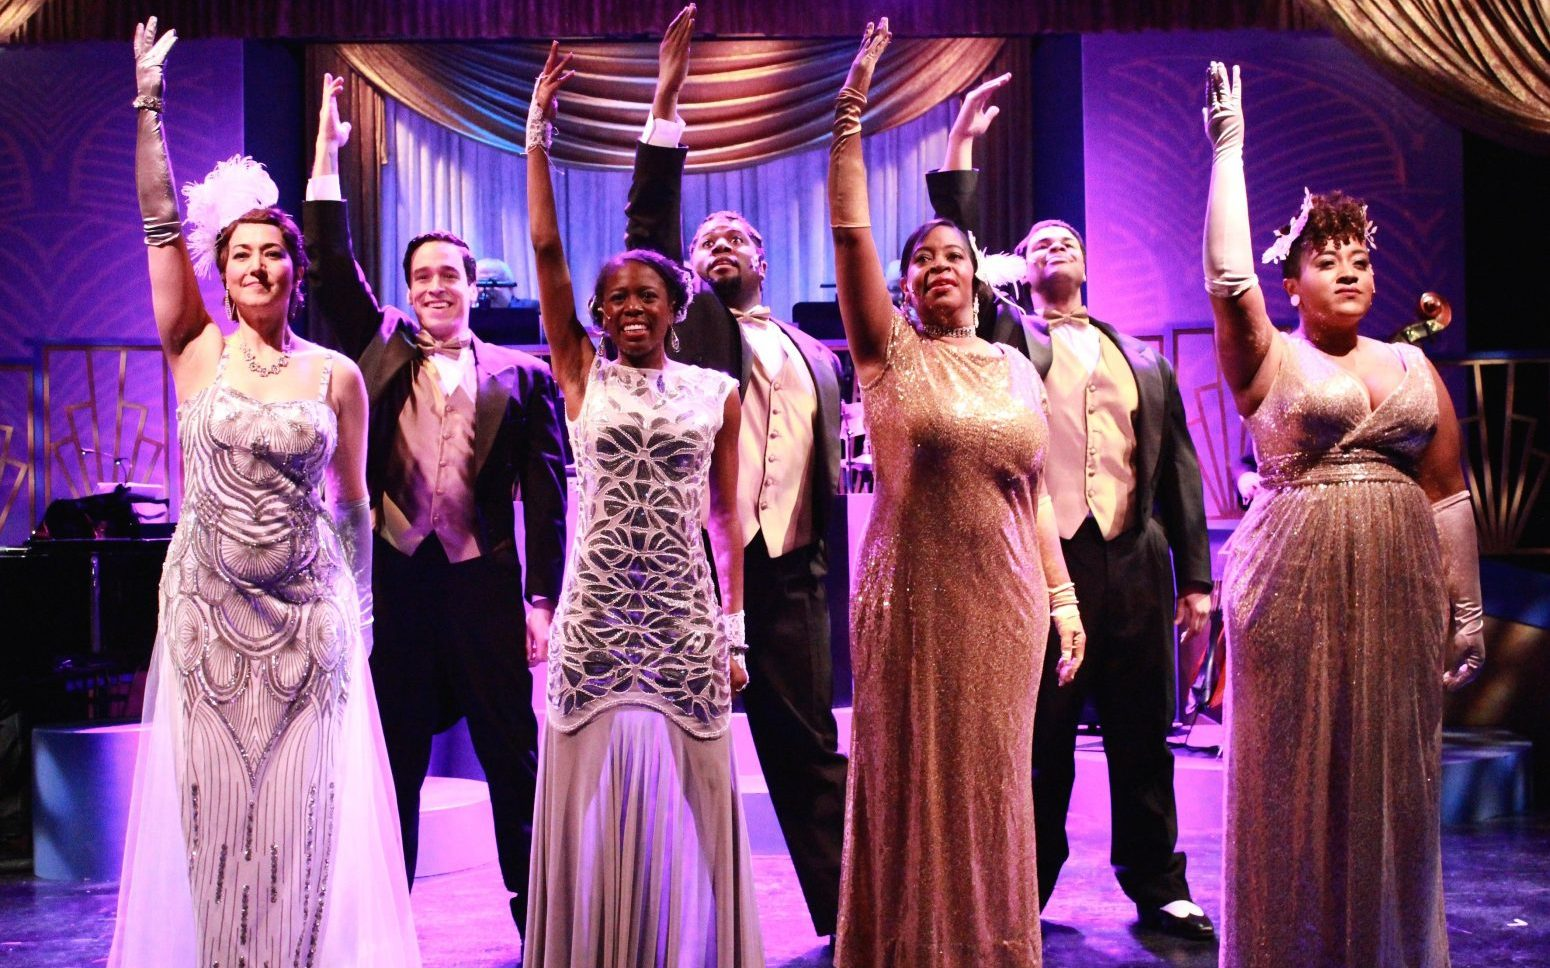 MusicalFare Theatre's production of the Duke Ellington revue 'Sophisticated Ladies' runs through March 5.